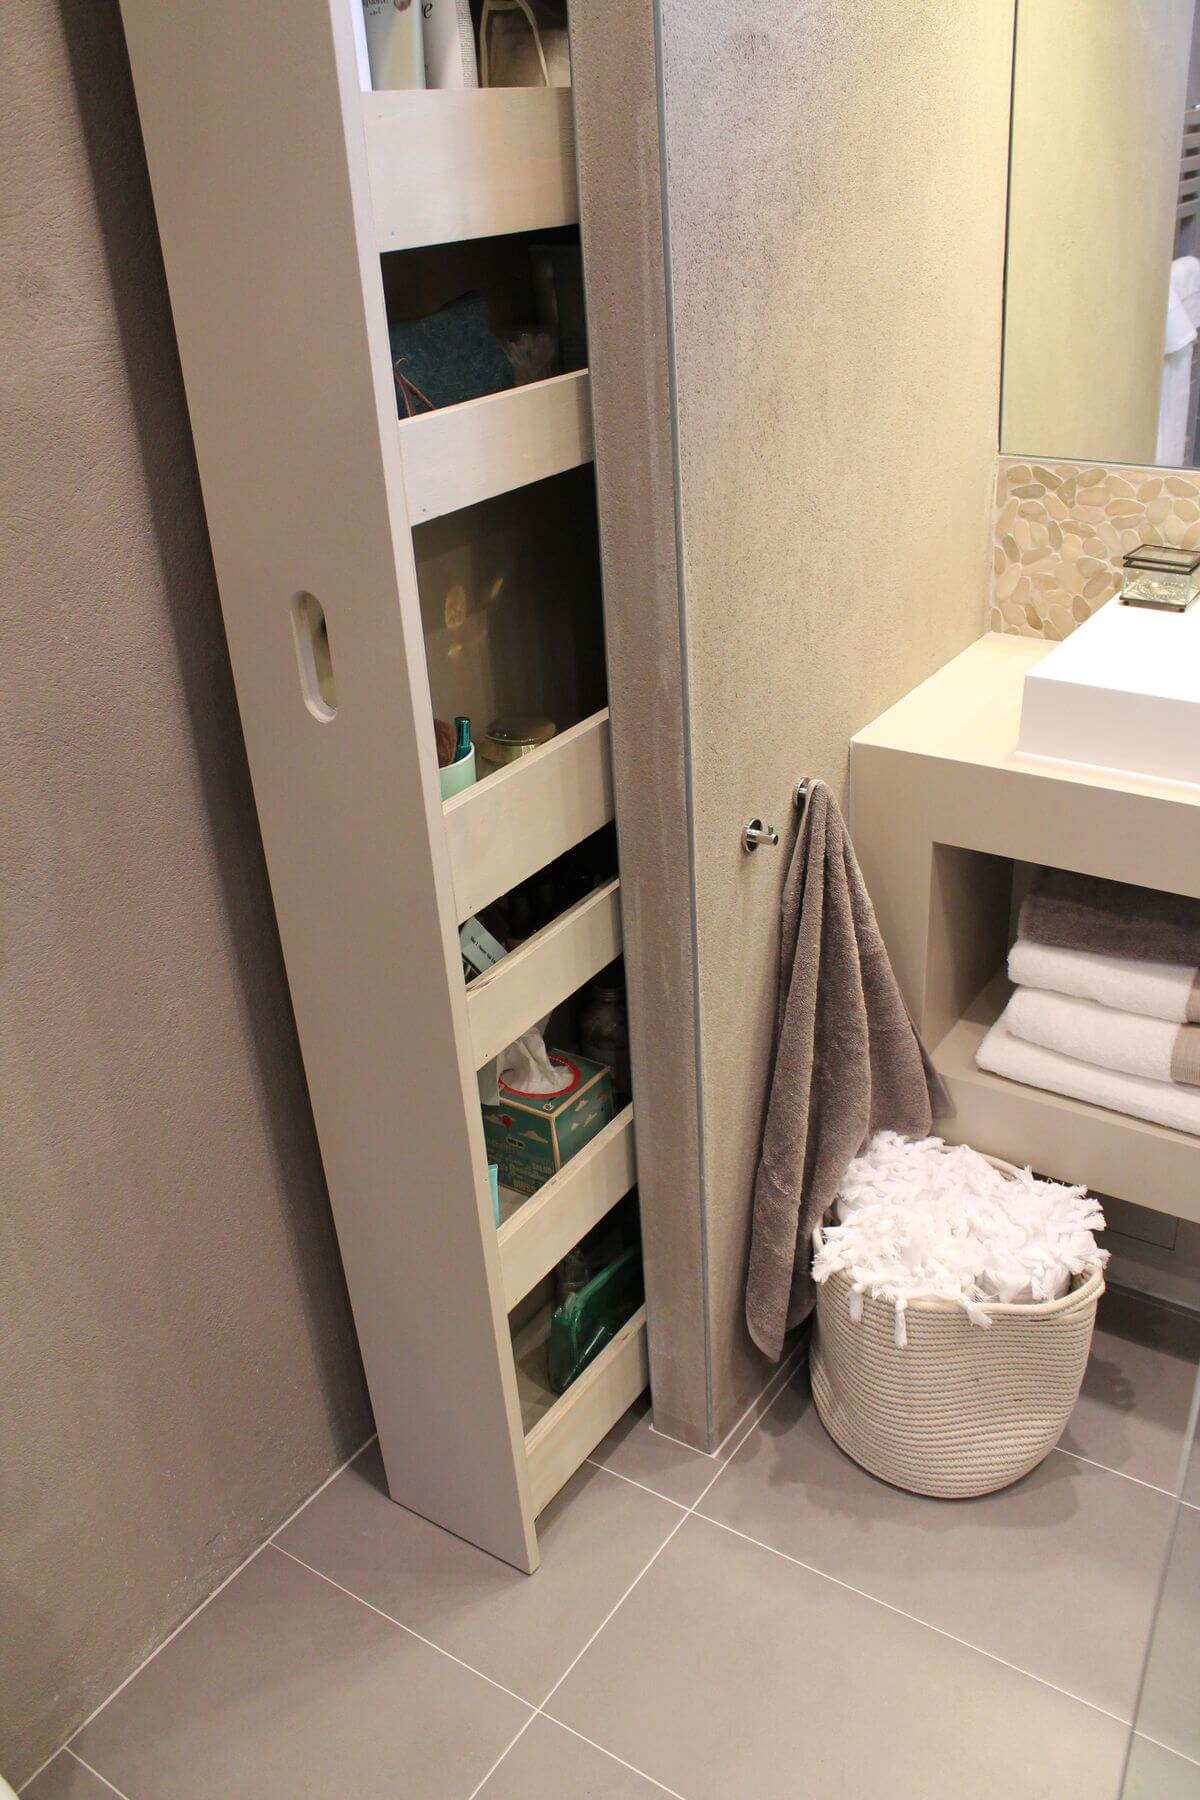 25 Best Builtin Storage Ideas and Designs for 2019